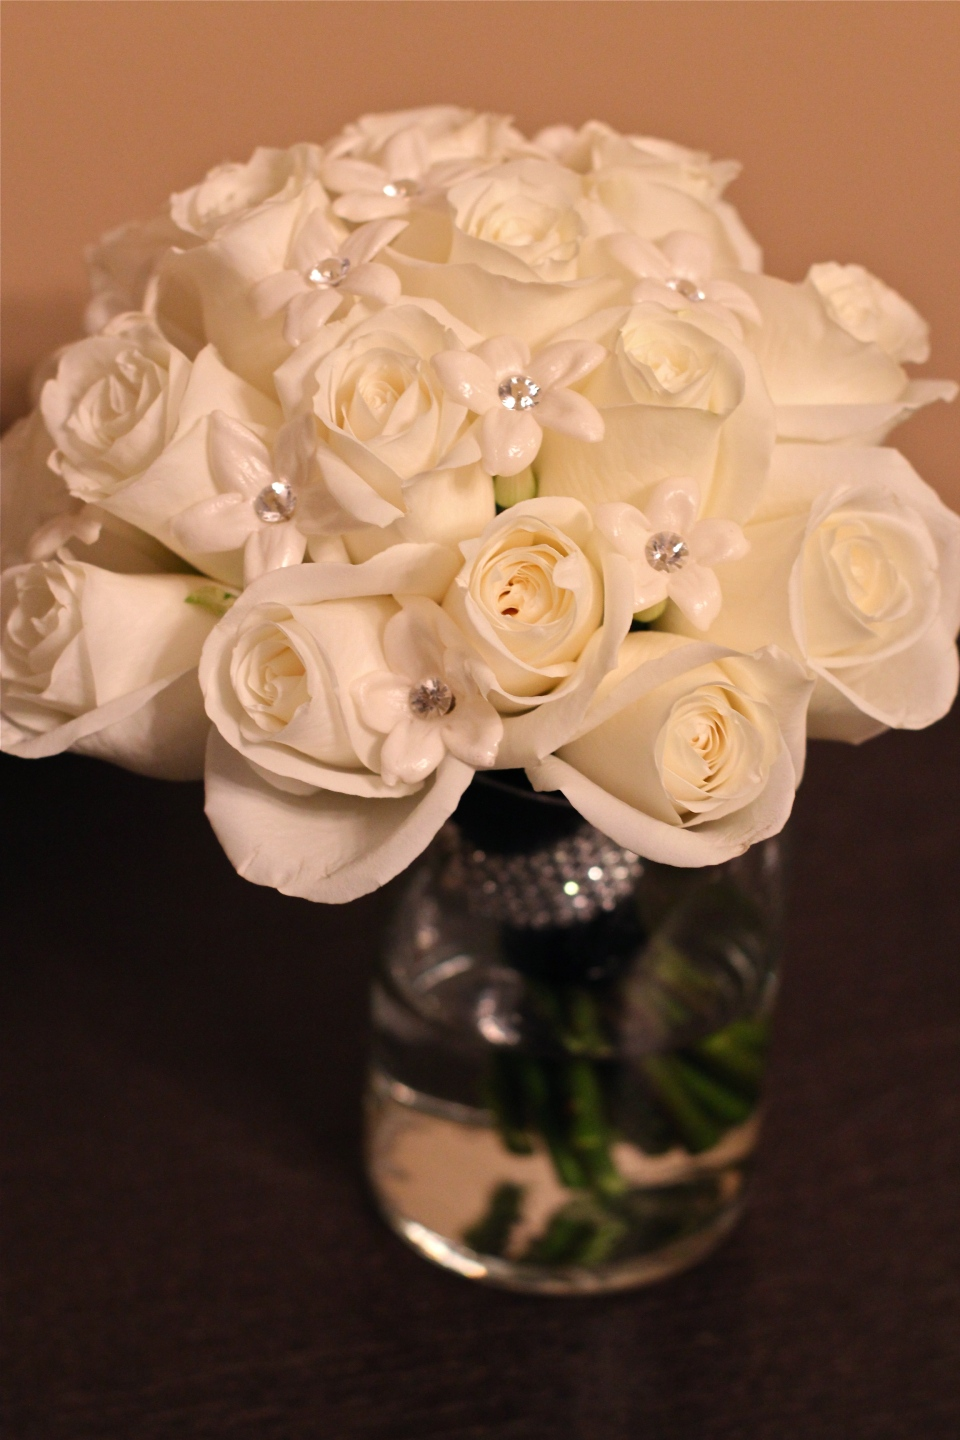 Bridesmaids bouquets of white roses & stephanotis.